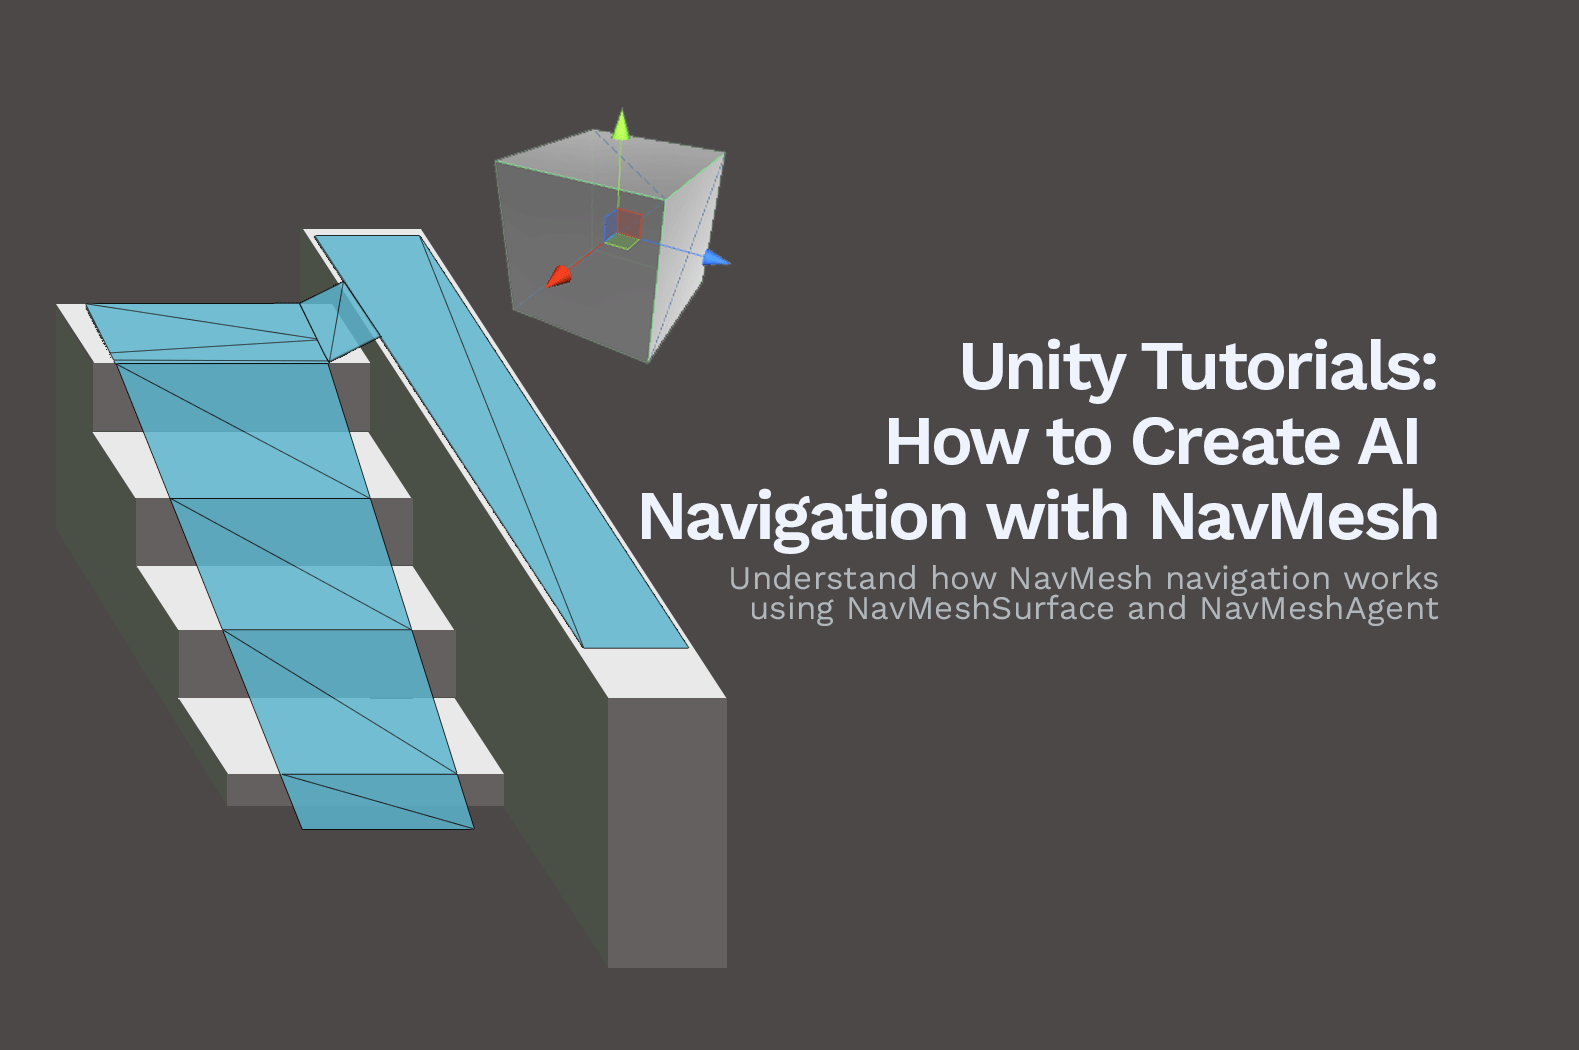 Unity Tutorial: How to Create AI Navigation with NavMesh